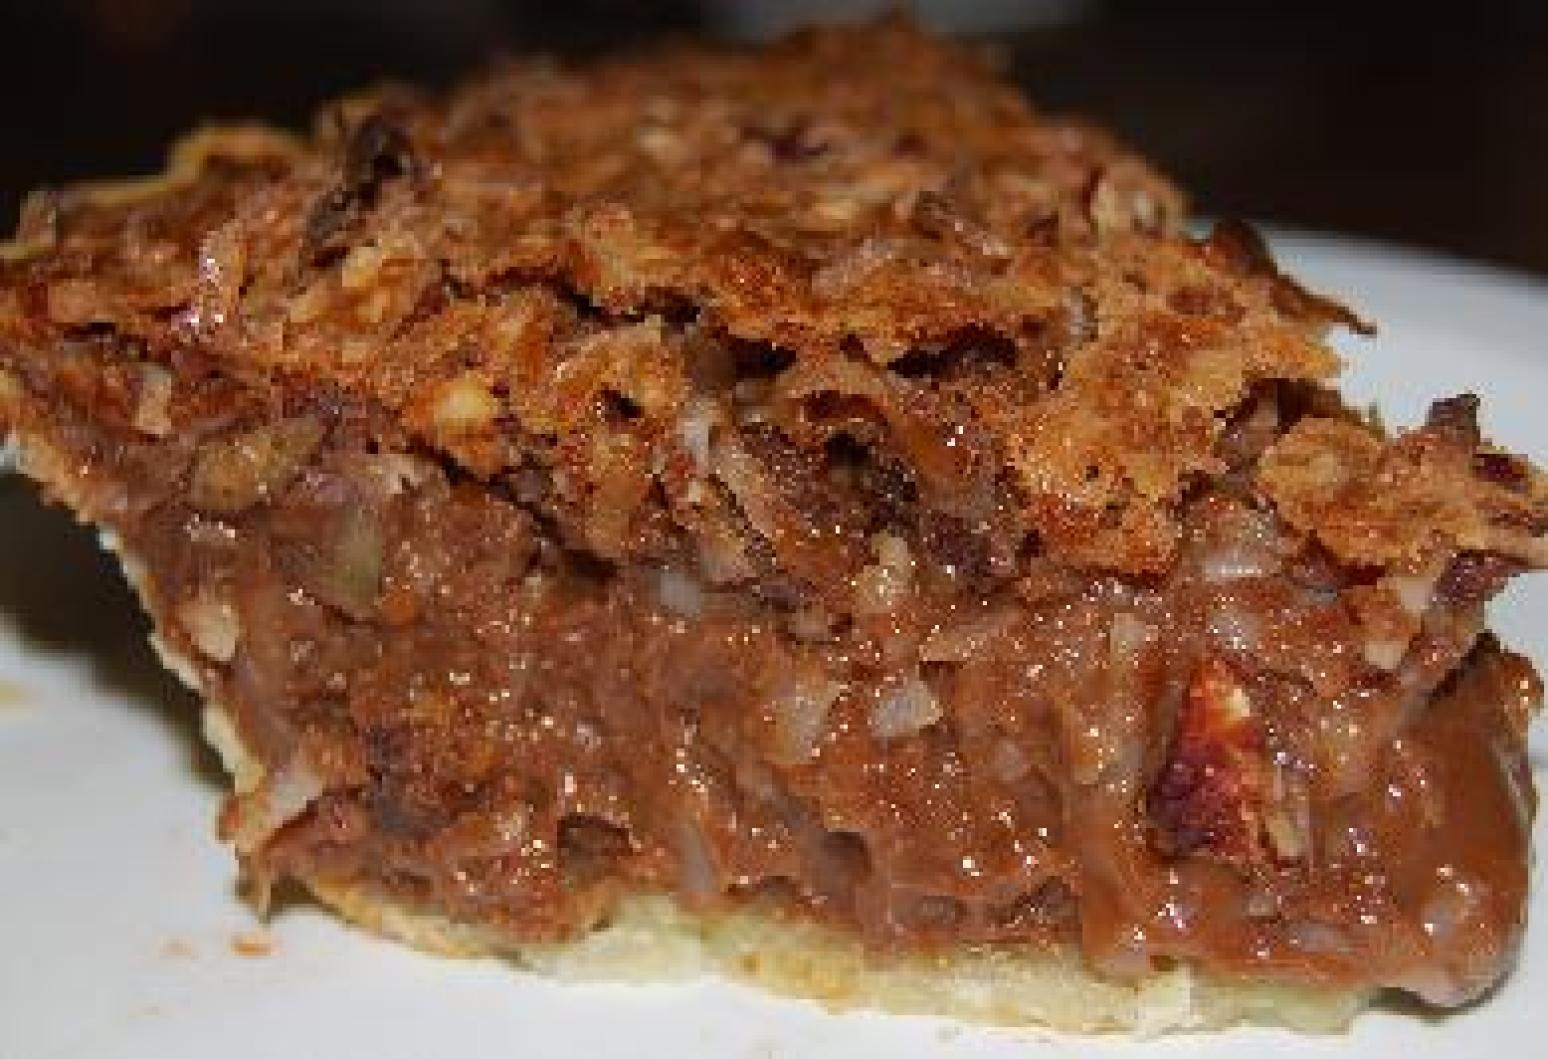 German Chocolate Pie Images - Reverse Search